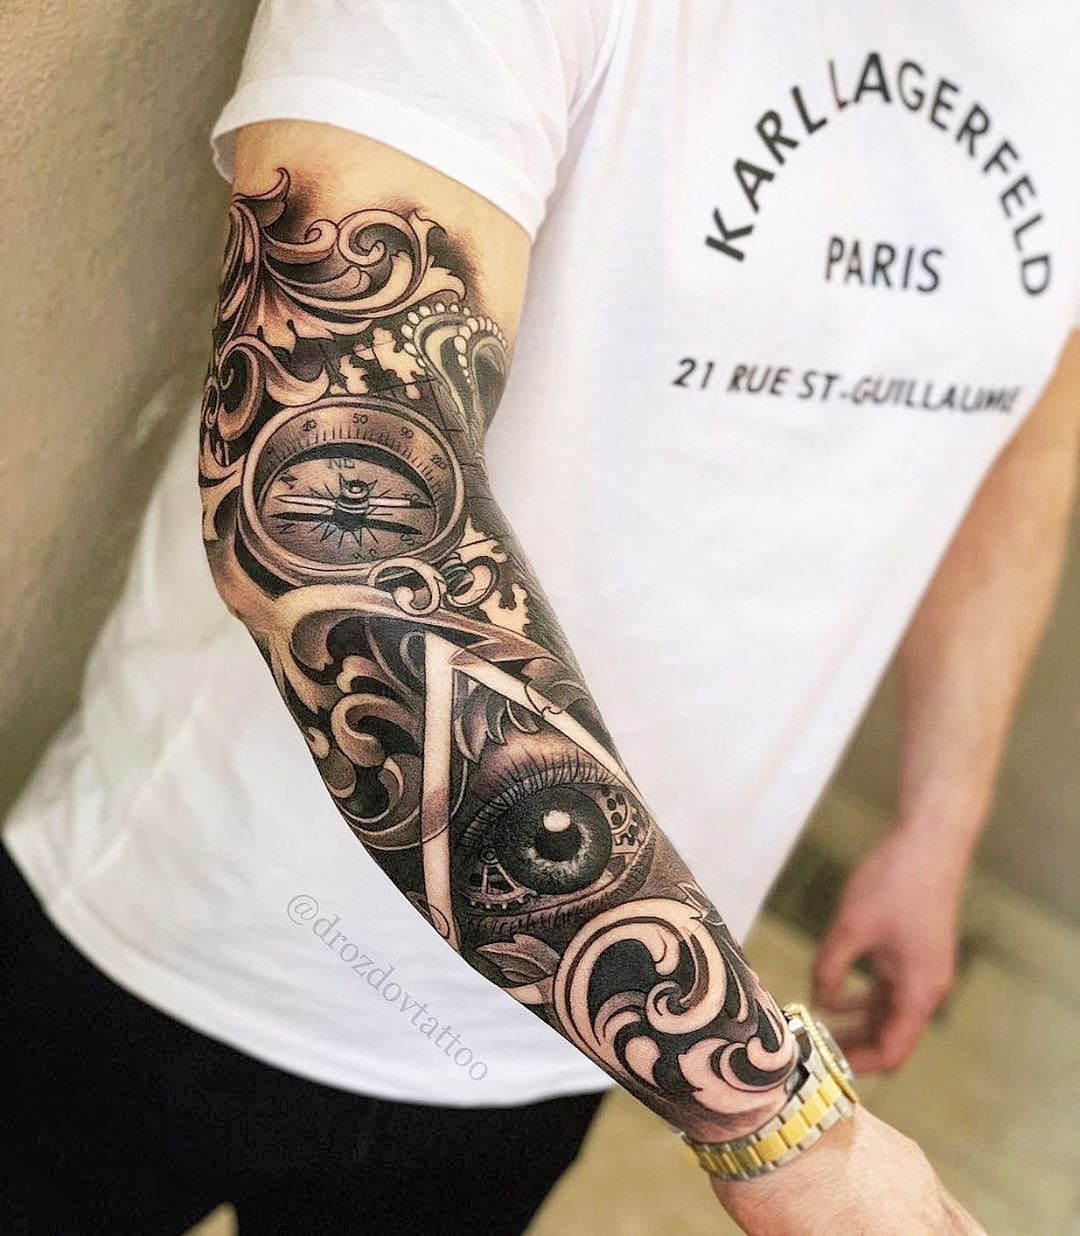 Modern Arm Tattoo Ideas You Can Try Right Now15 In 2020 Tattoos Sleeve Tattoos Best Sleeve Tattoos